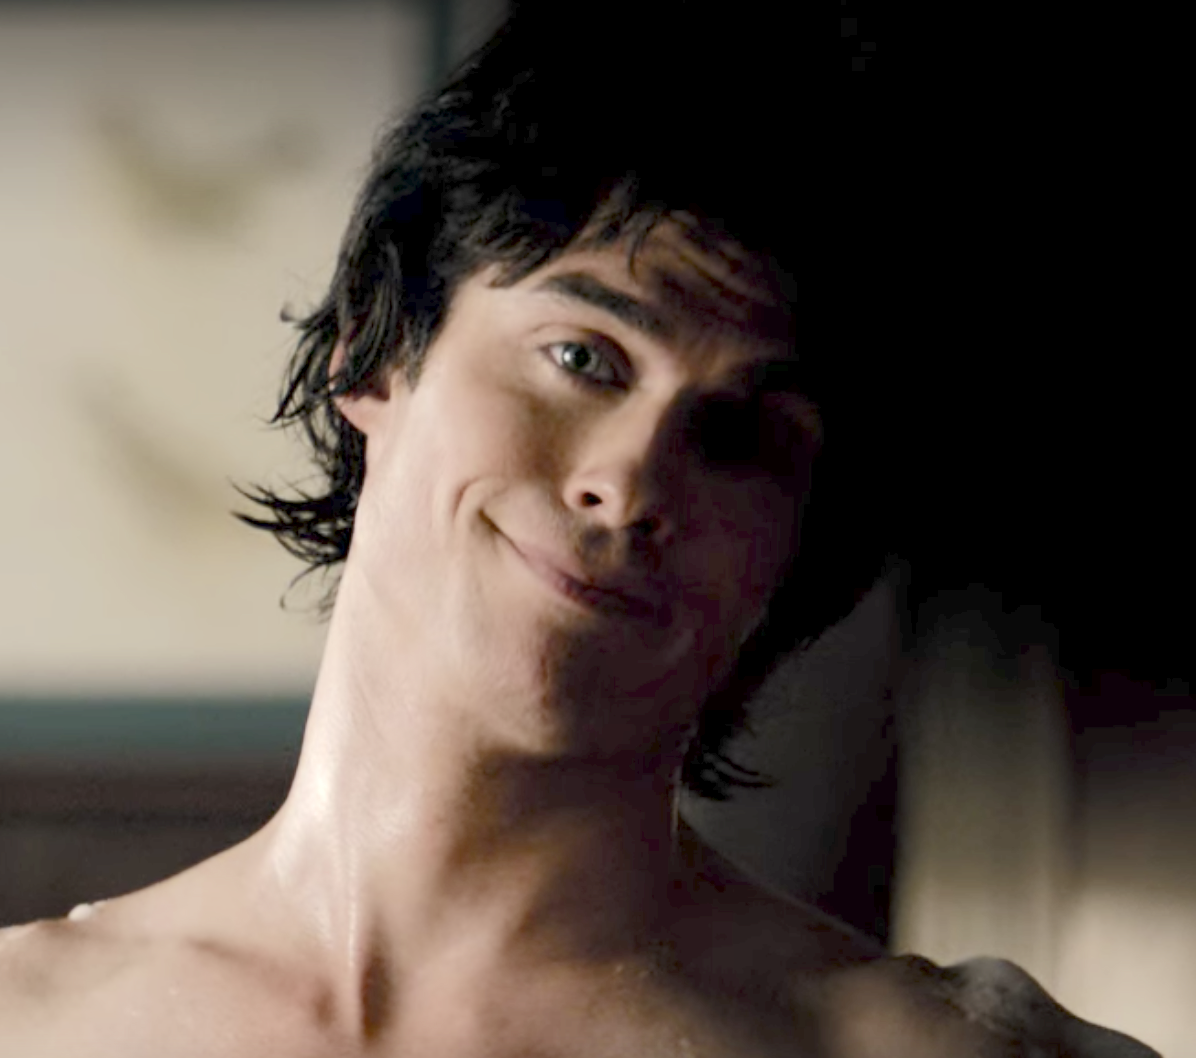 Damon with bangs and a longer back that curls up